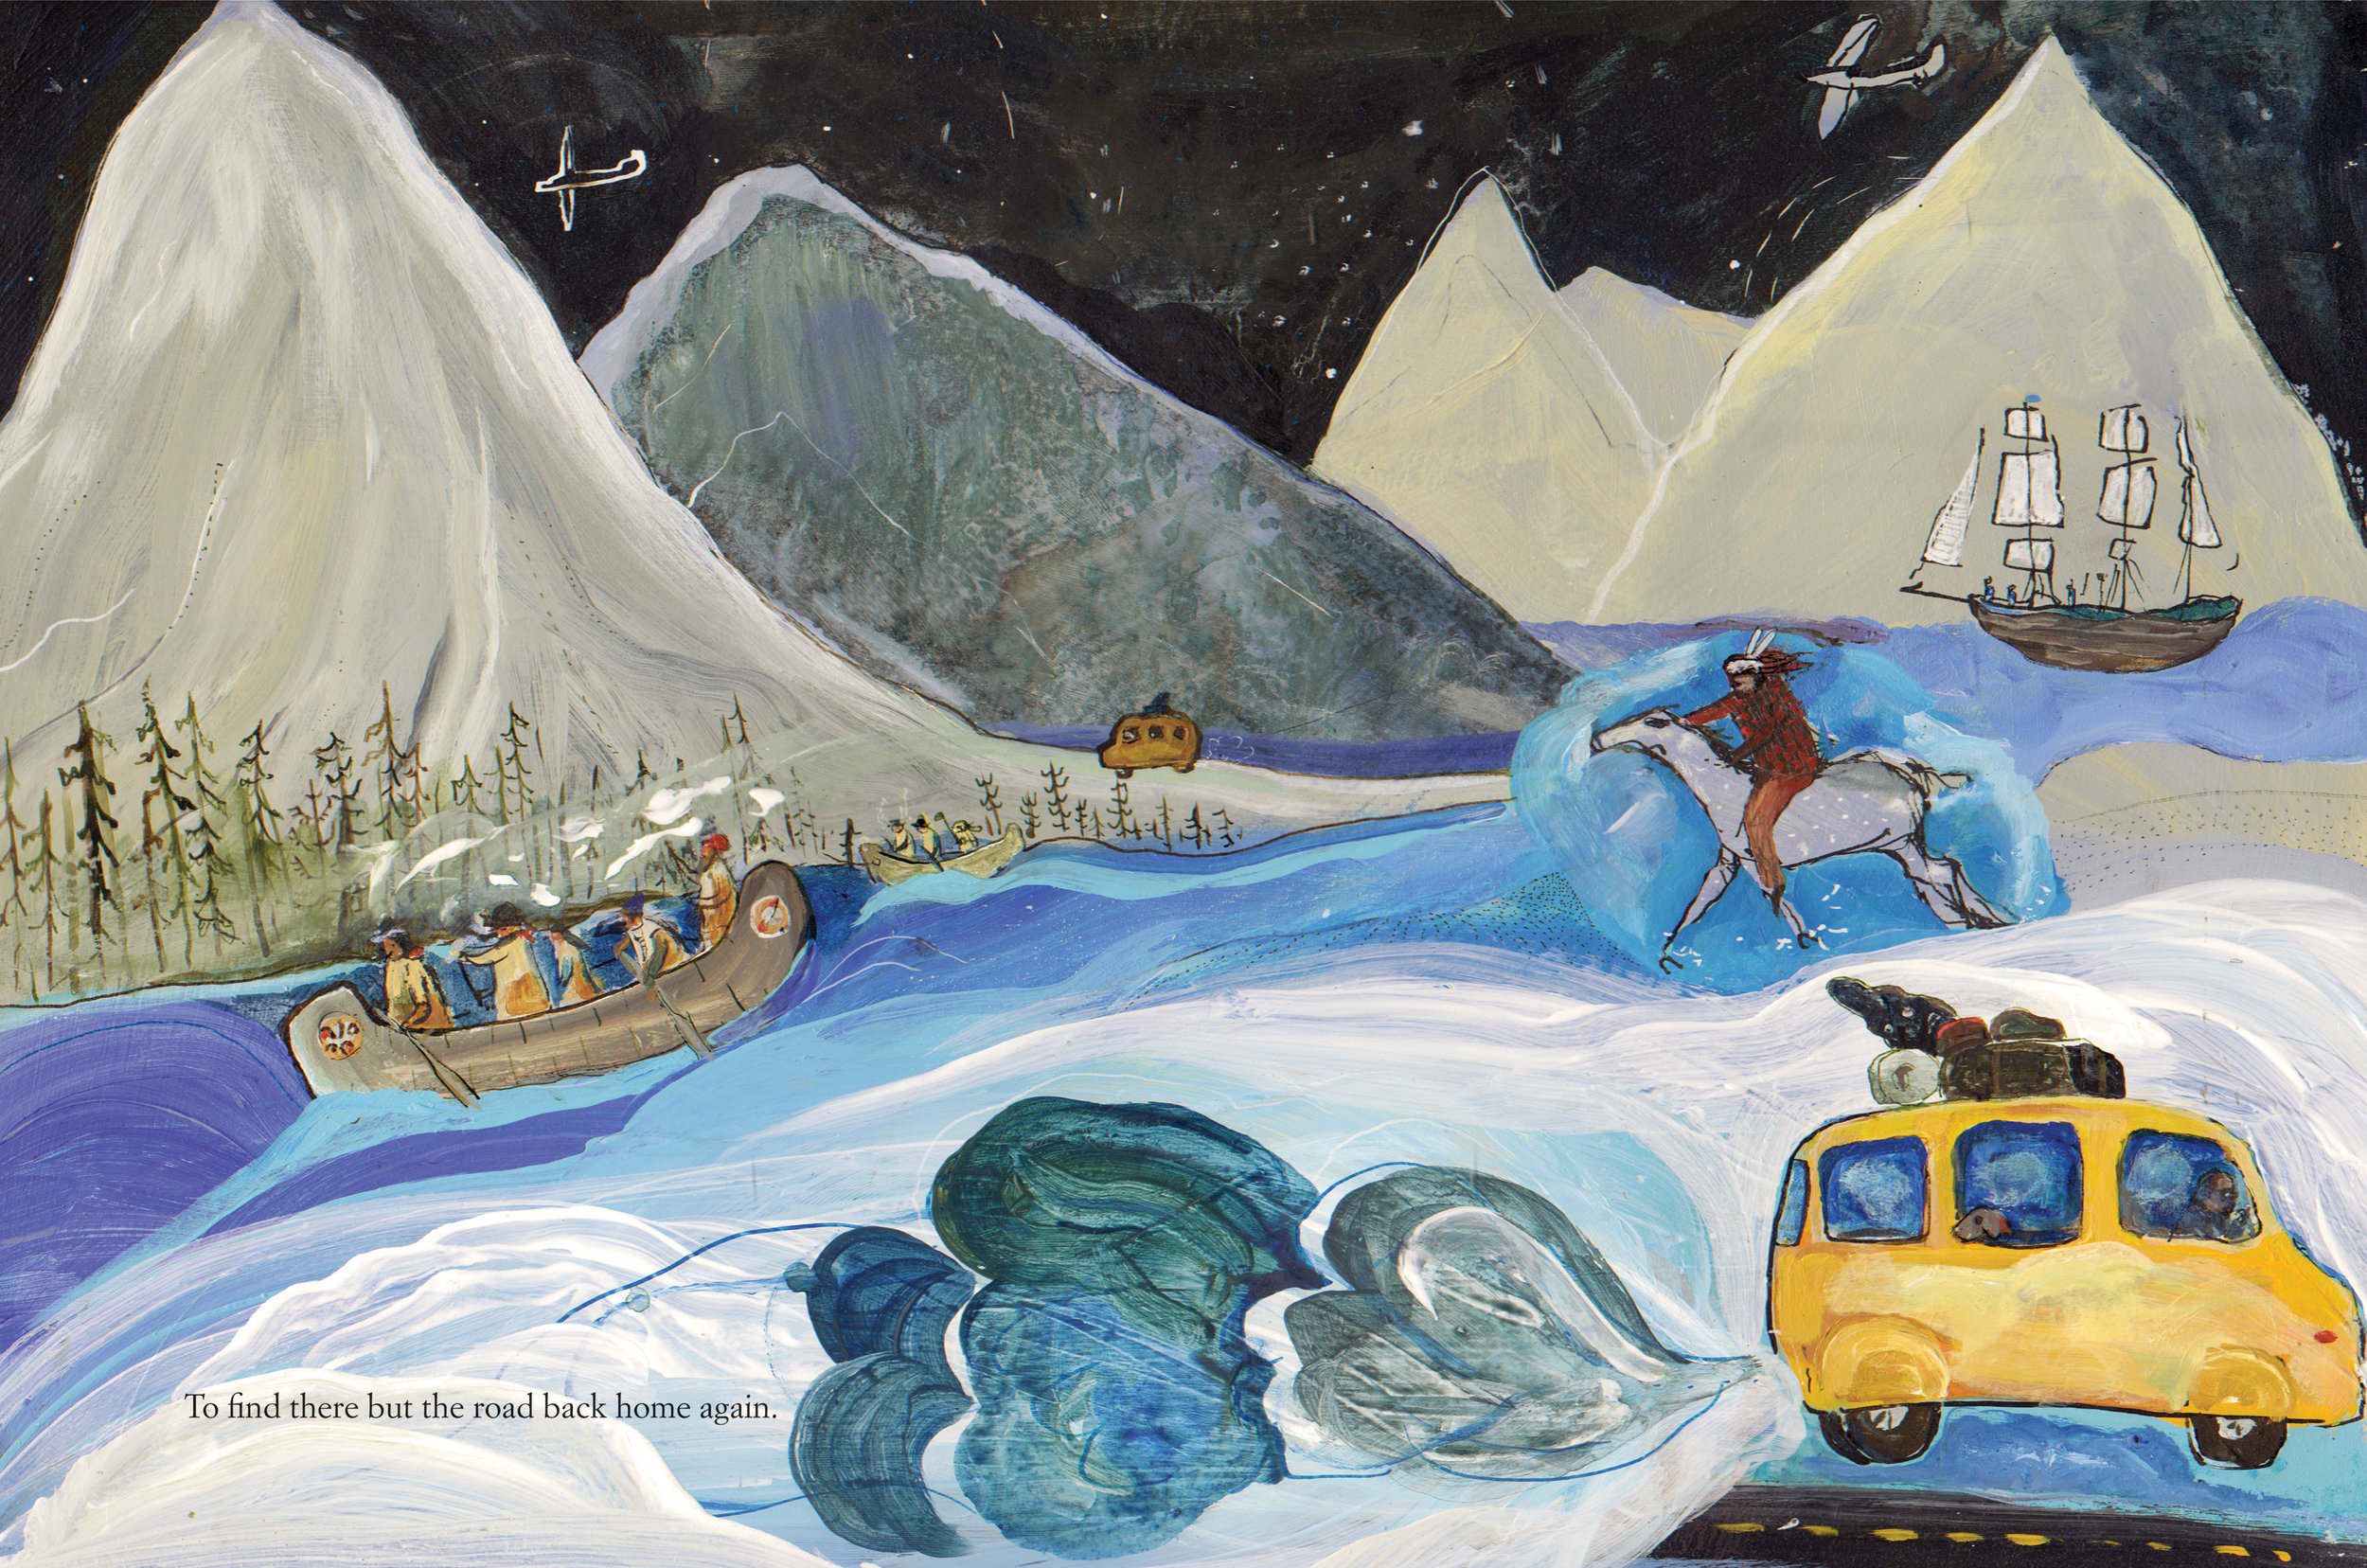 Northwest Passage Written by Stan Rogers, Illustrated by Matt James